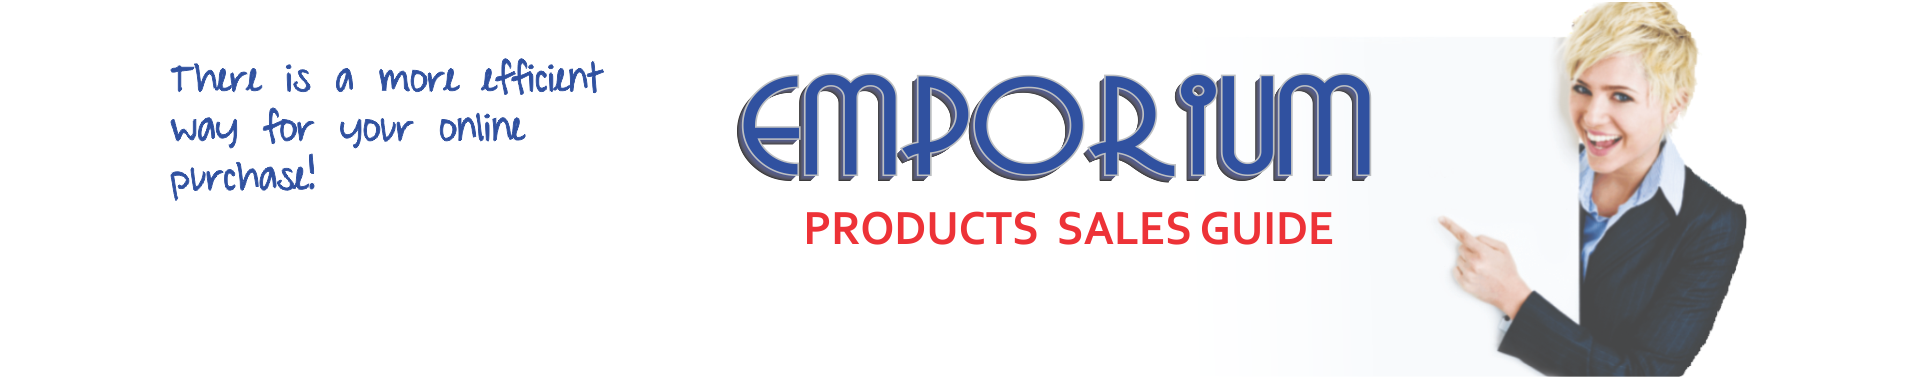 Emporium Product Sales Guide Store